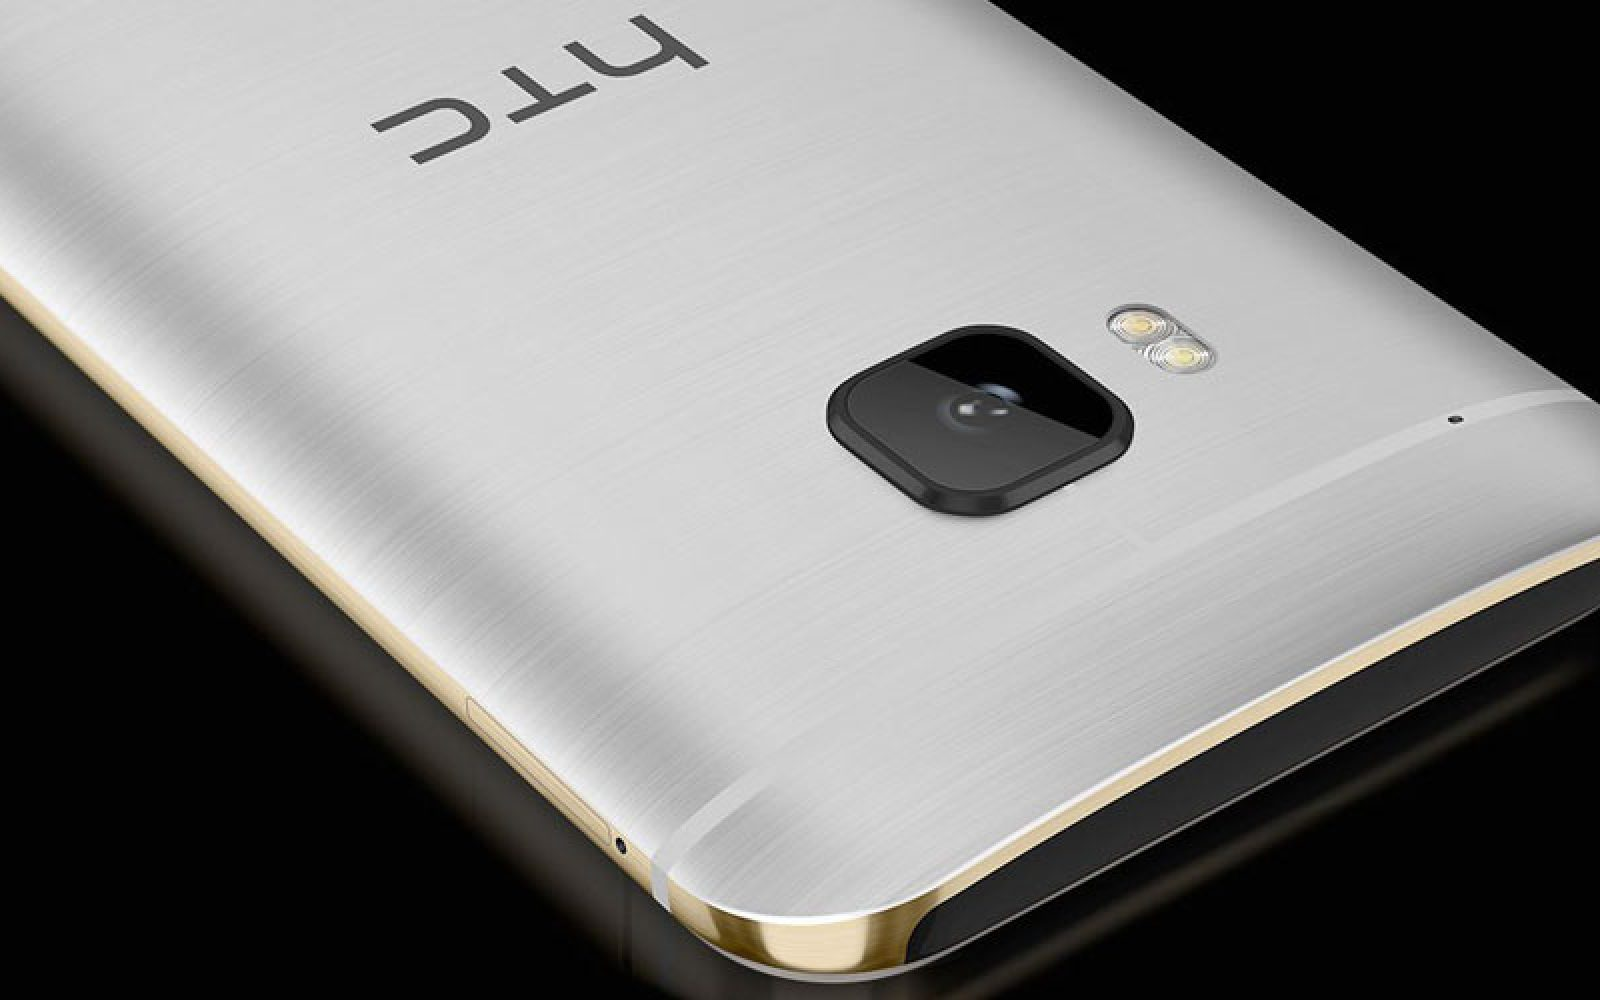 HTC One M10 'Perfume' rumored to come with Snapdragon 820